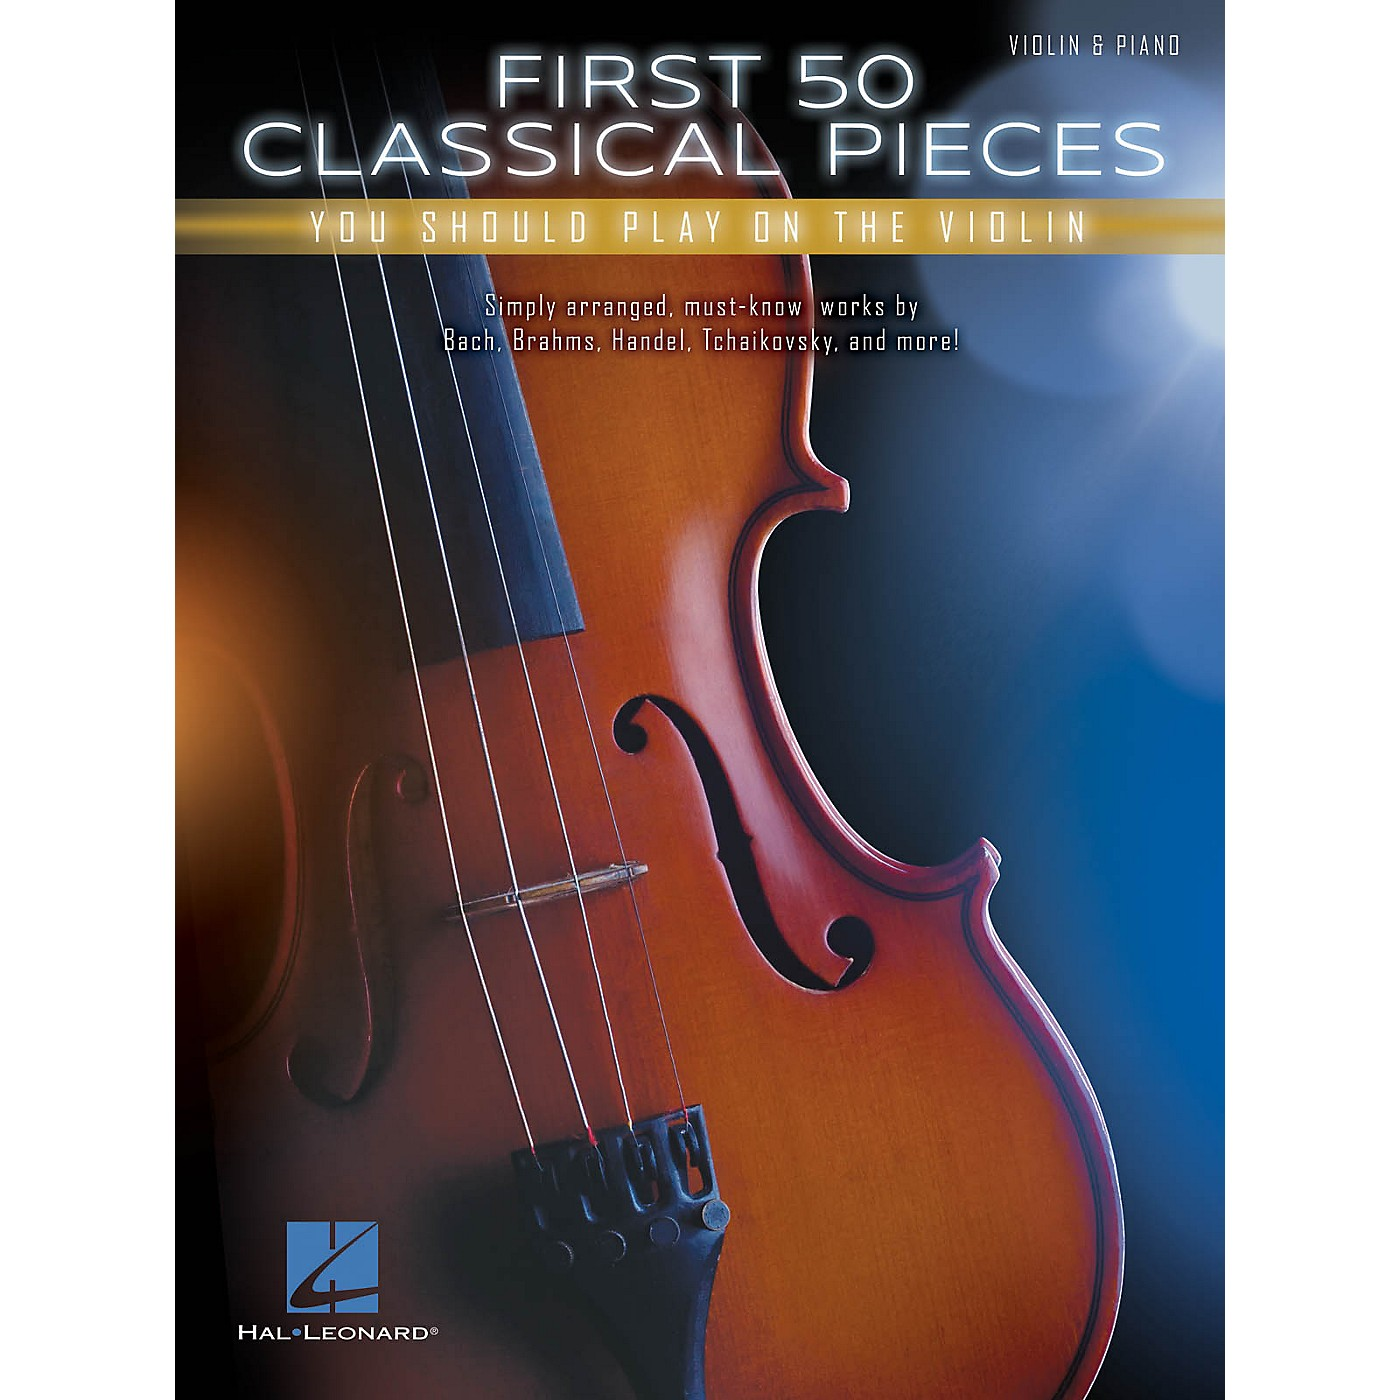 Hal Leonard First 50 Classical Pieces You Should Play on the Violin thumbnail